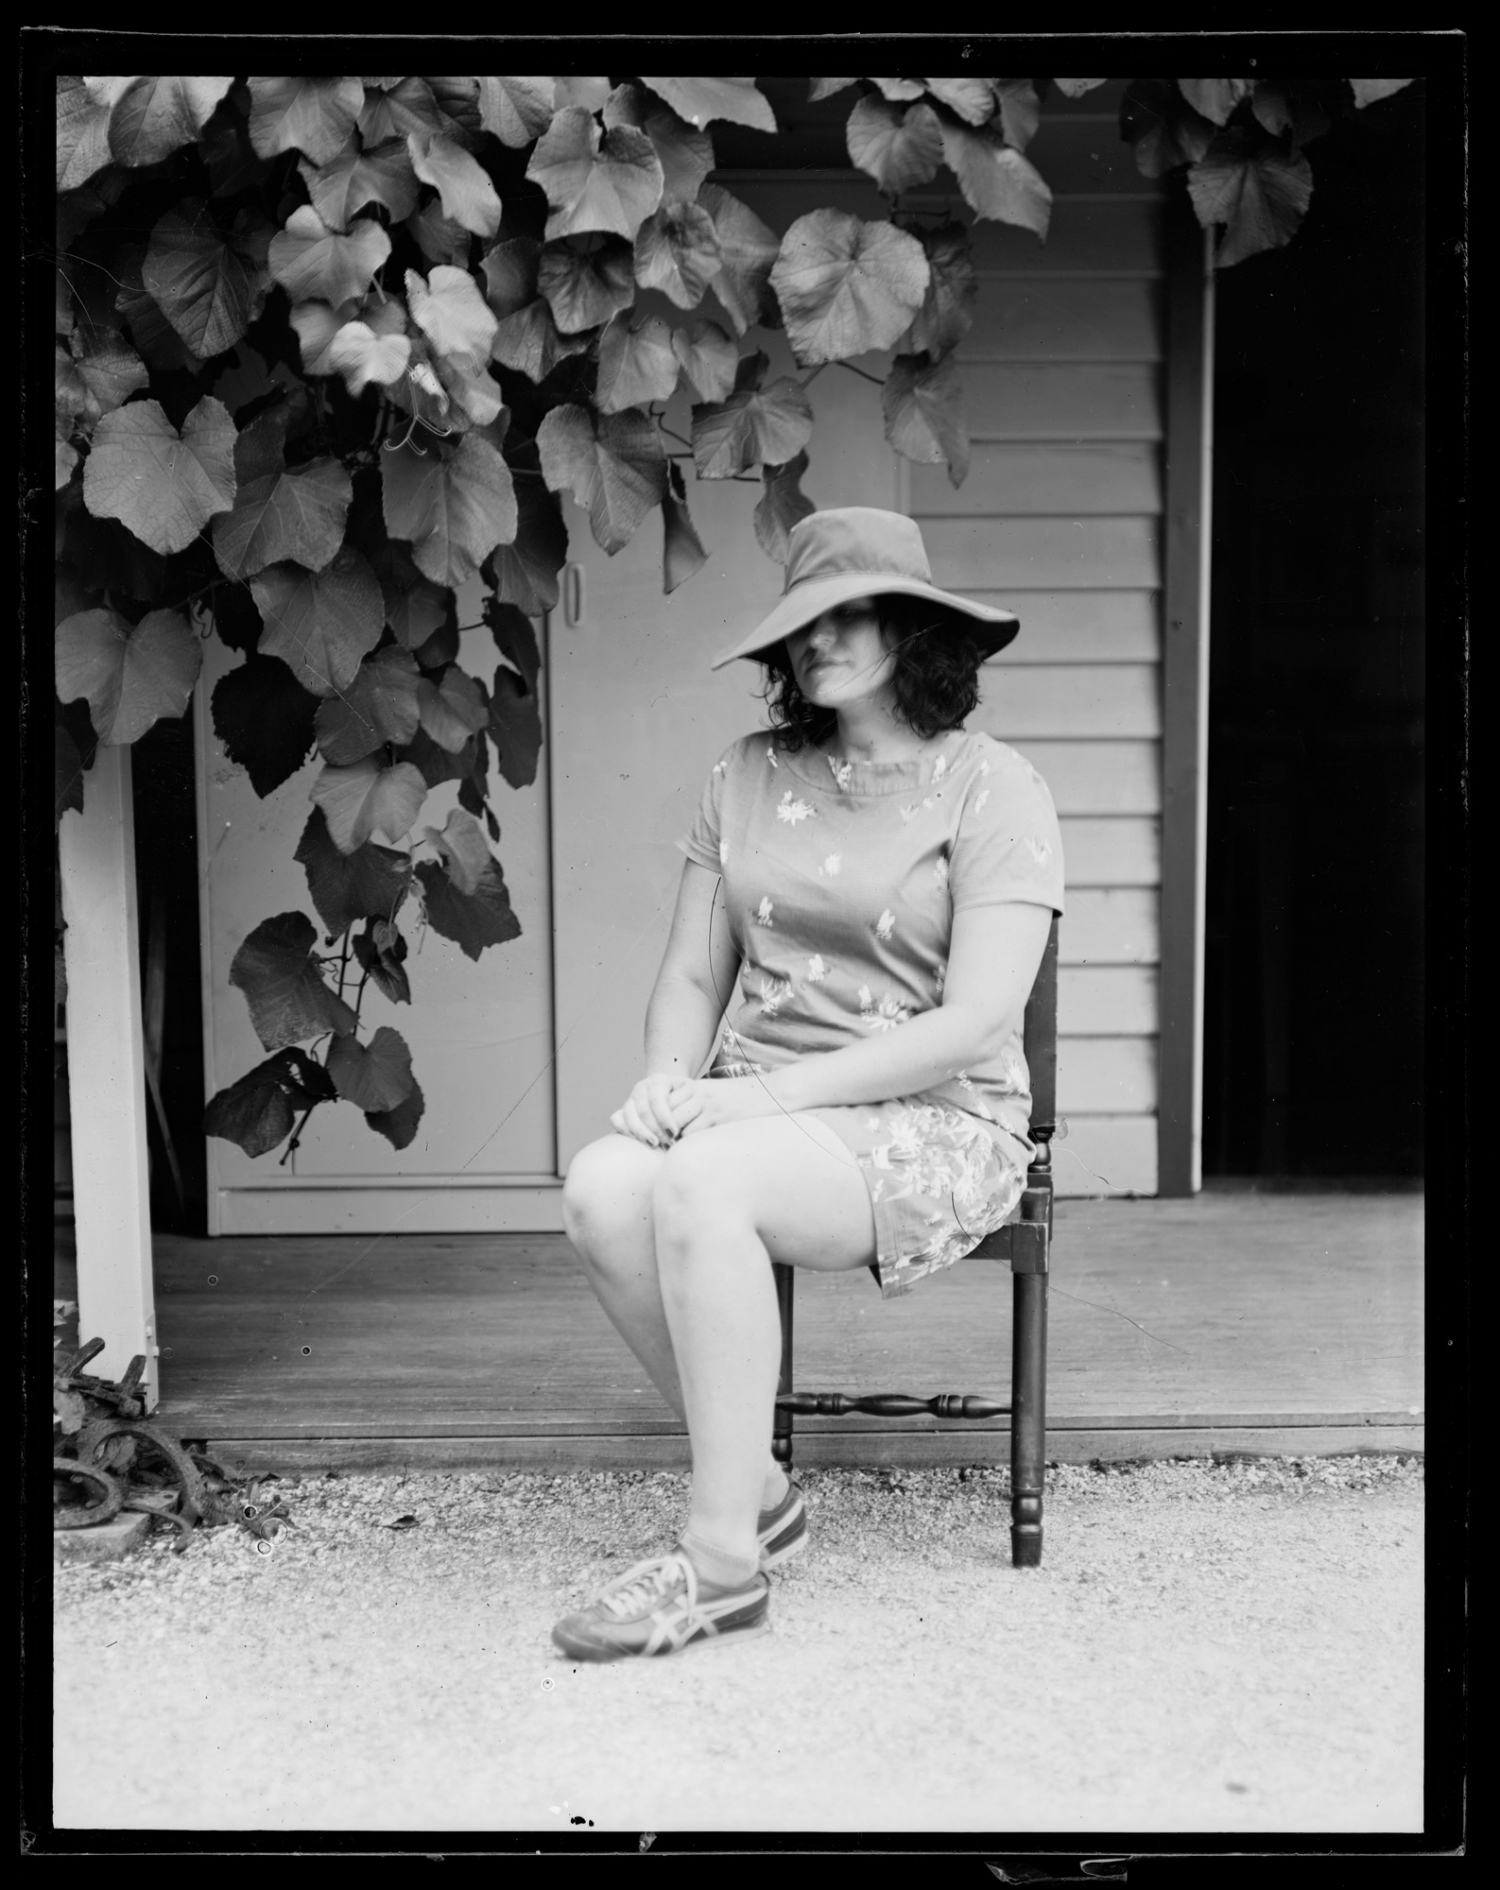 Black and white photo of woman sitting on chair in garden.